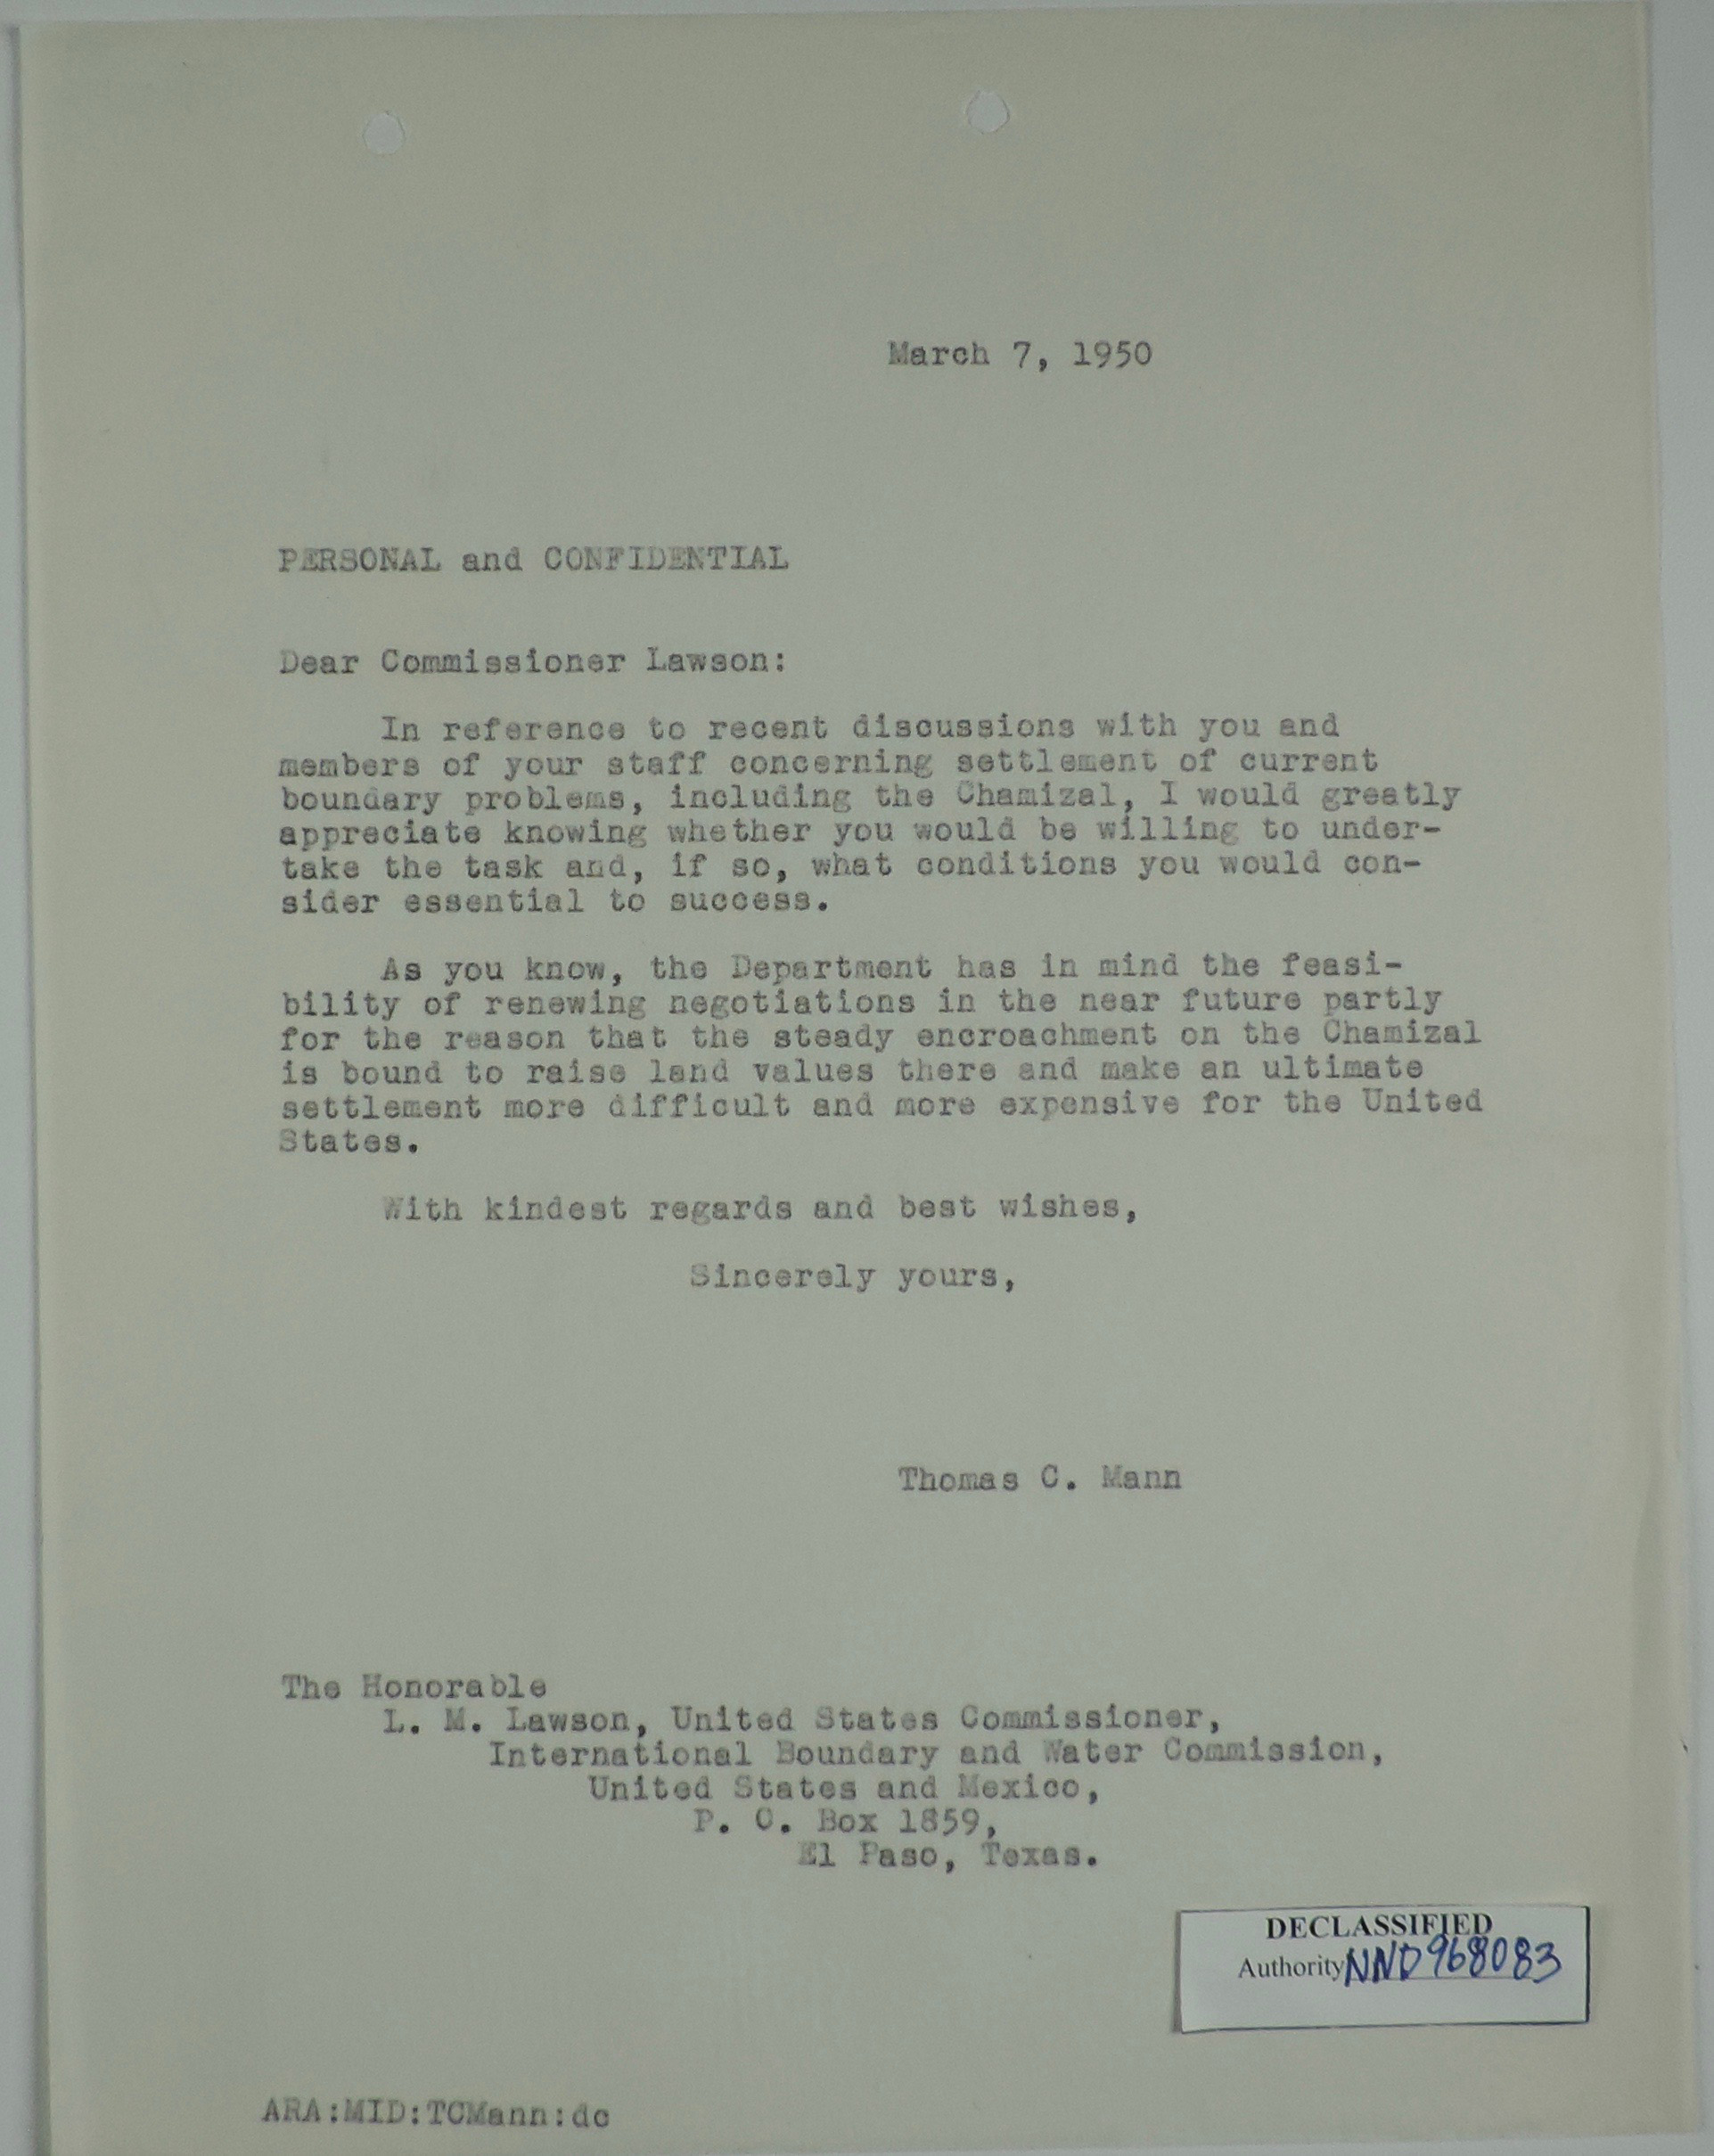 Confidential Letter from Thomas C  Mann to L  M  Lawson re